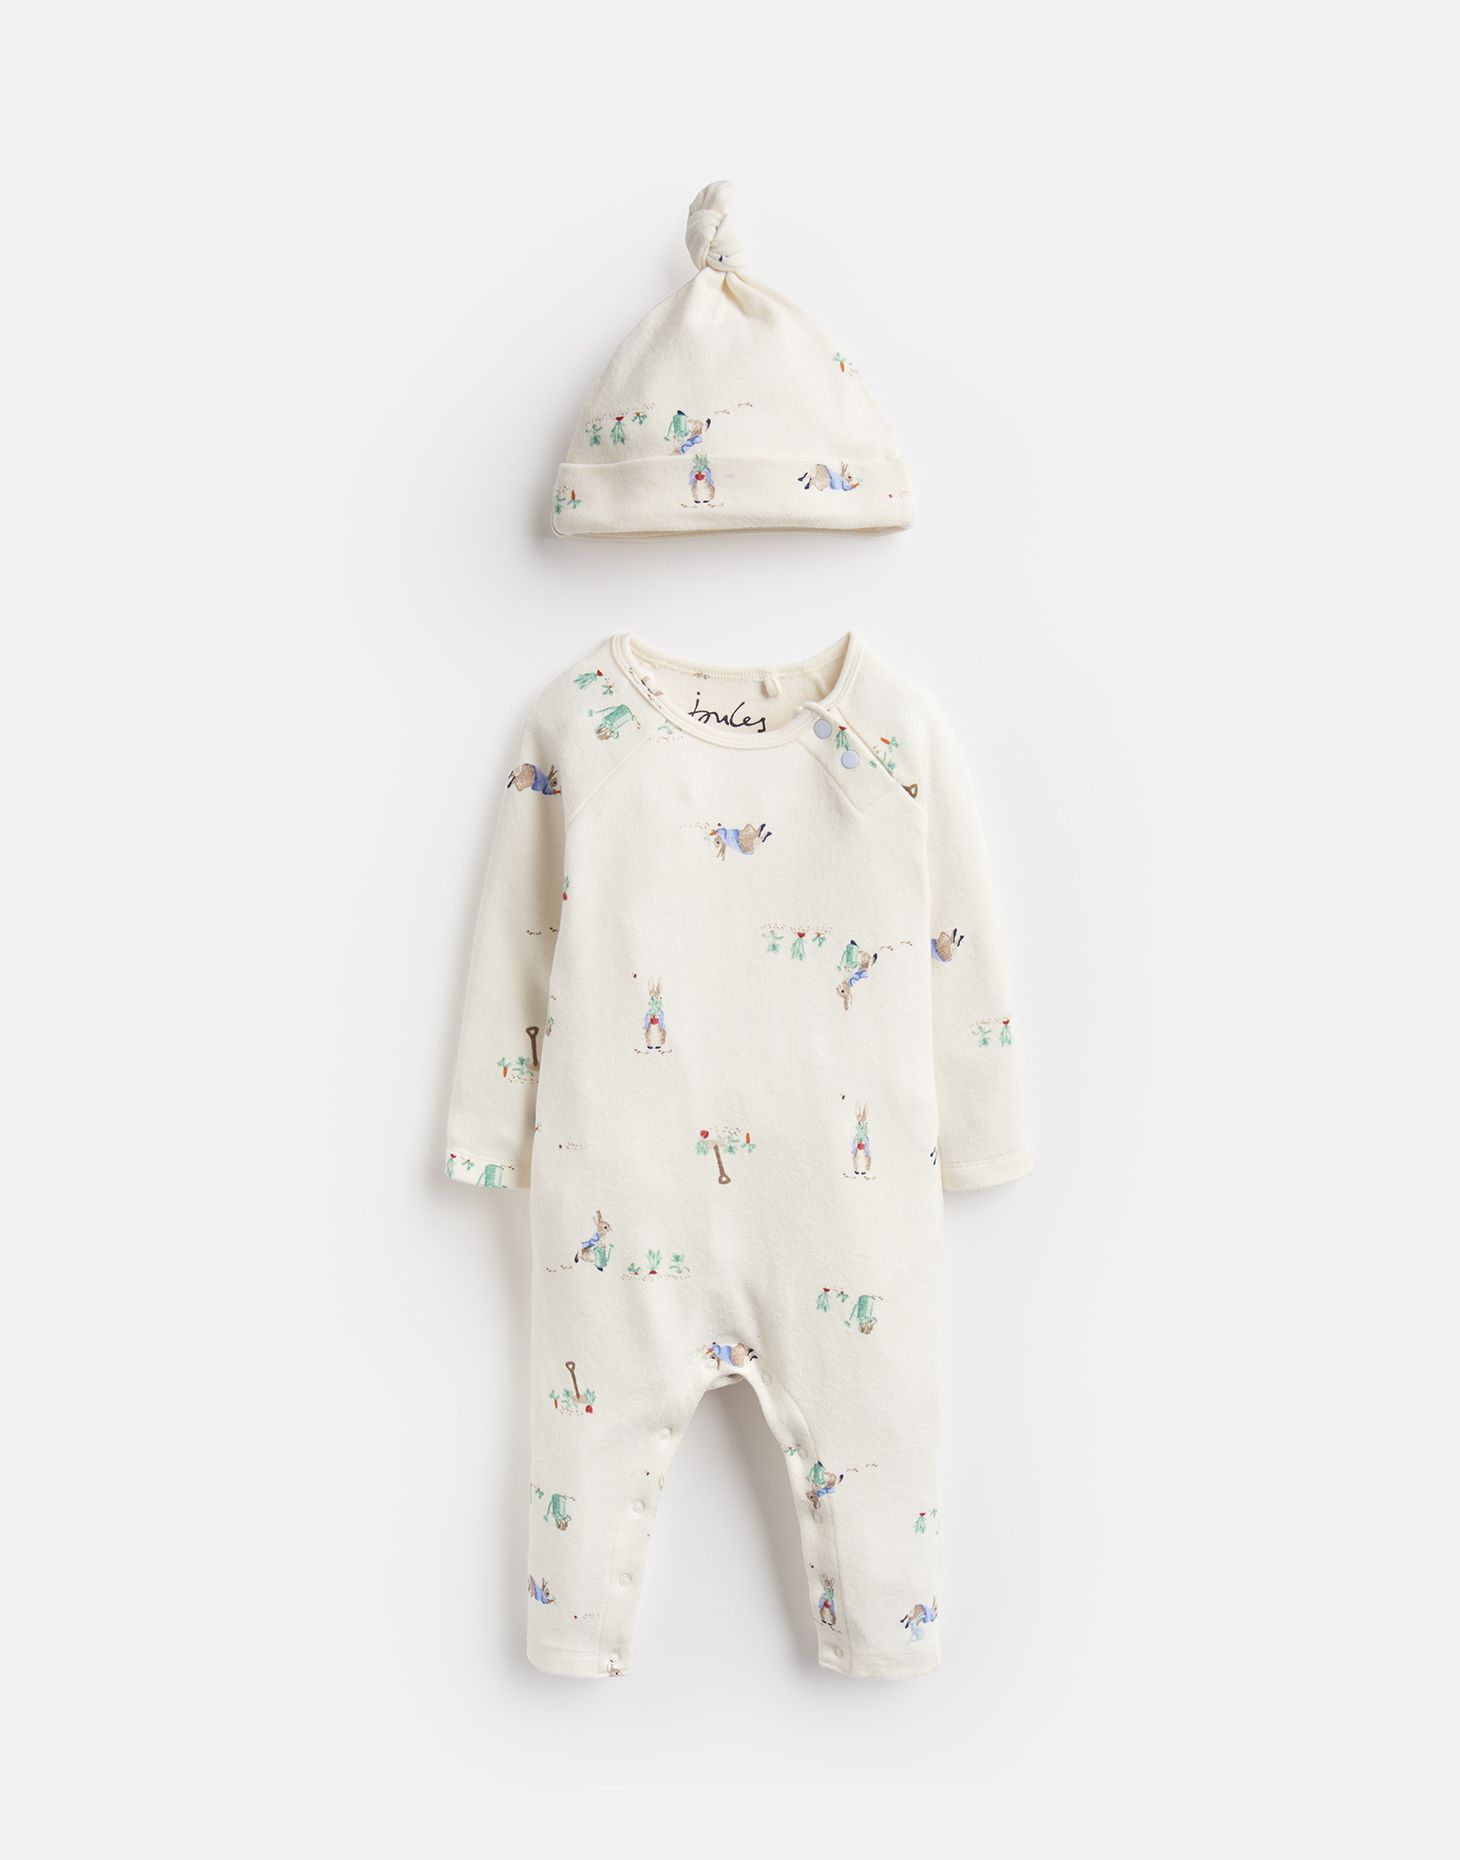 GIGGLE OFFICIAL PETER RABBIT™ COLLECTION SUPERSOFT BABYGROW AND HAT SET